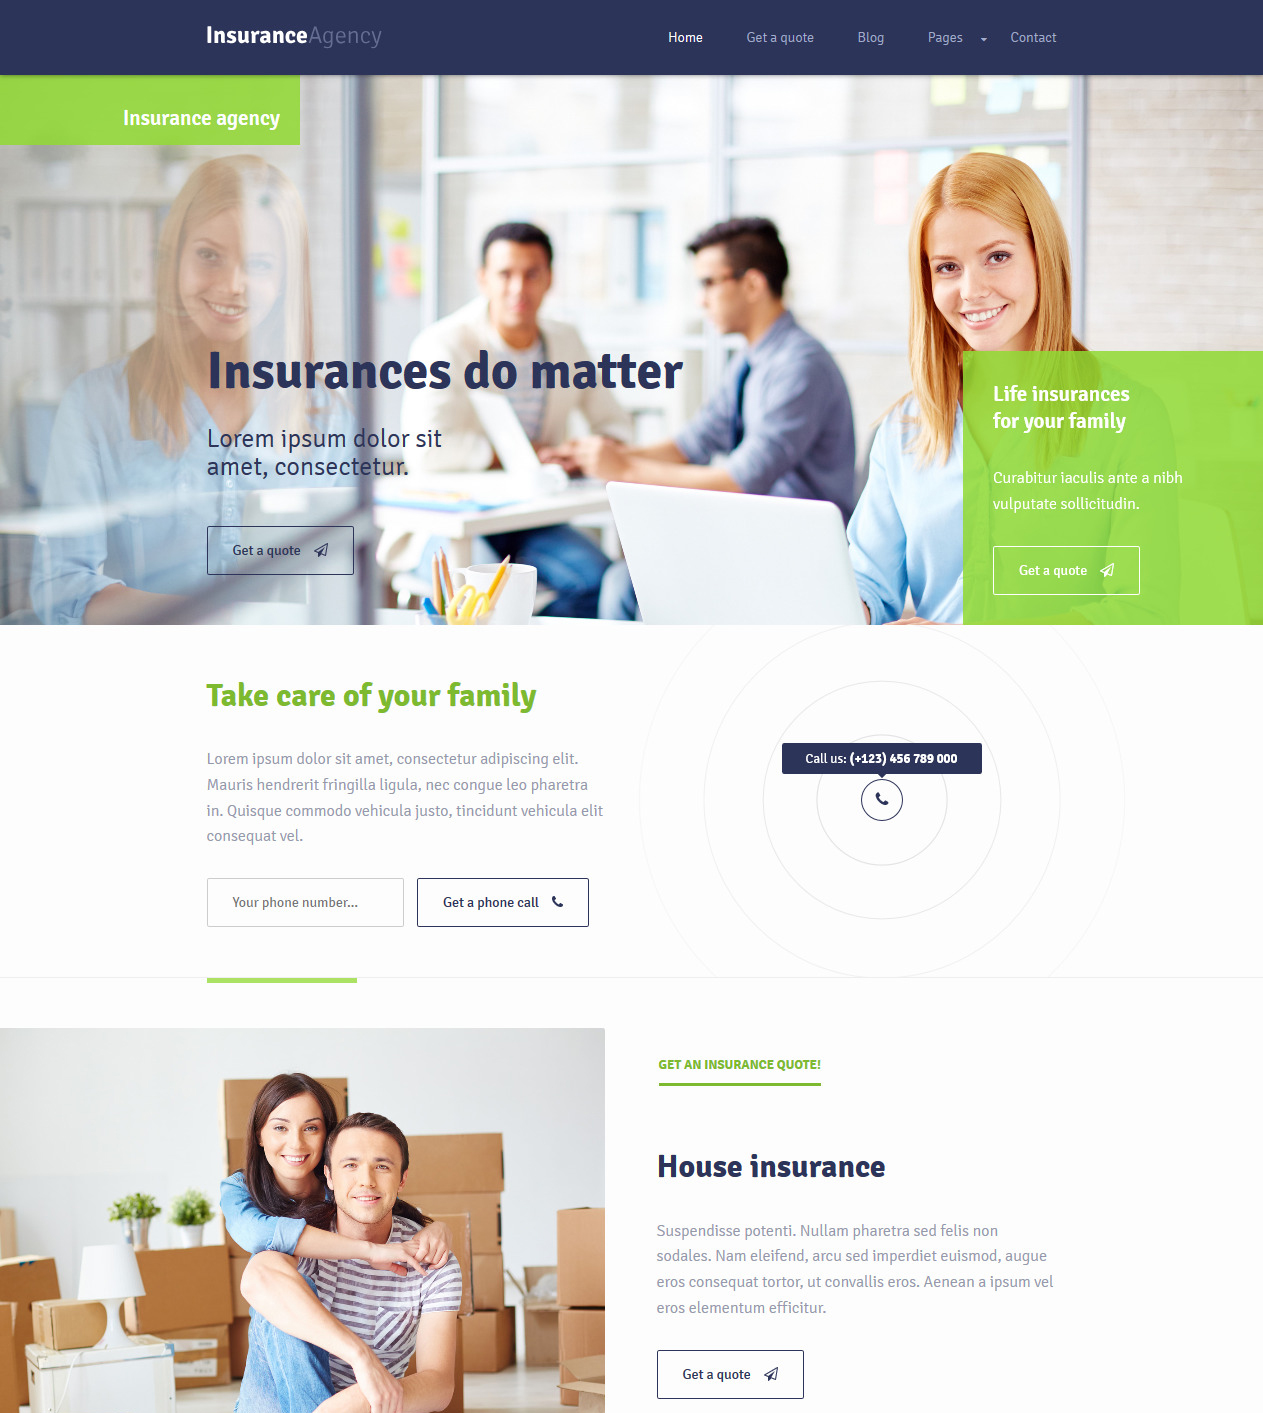 Insurance Agency Thumb - Our Themes